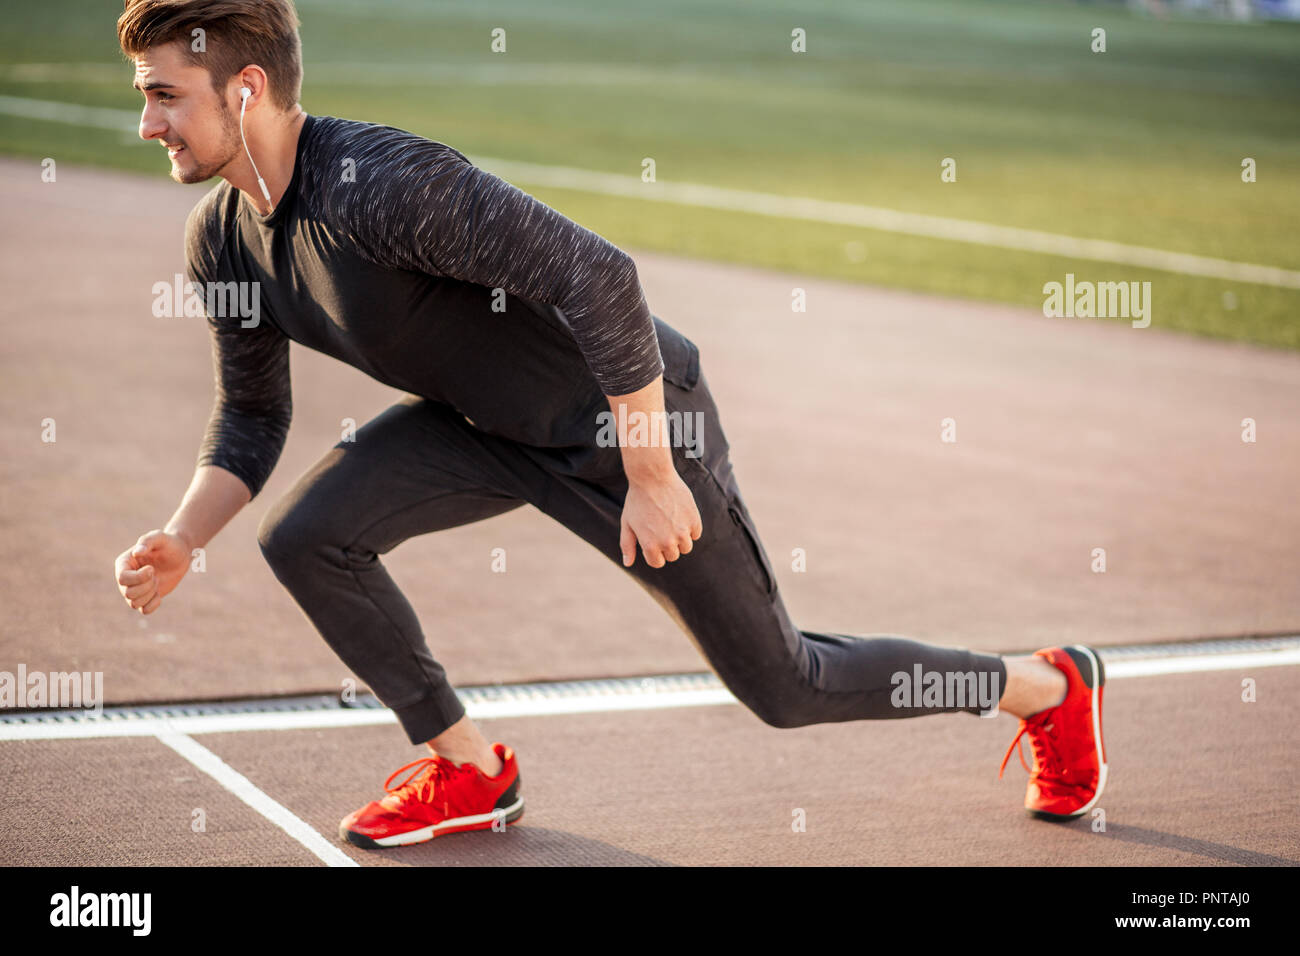 athlete in black clothes starting sprint on running track - Stock Image